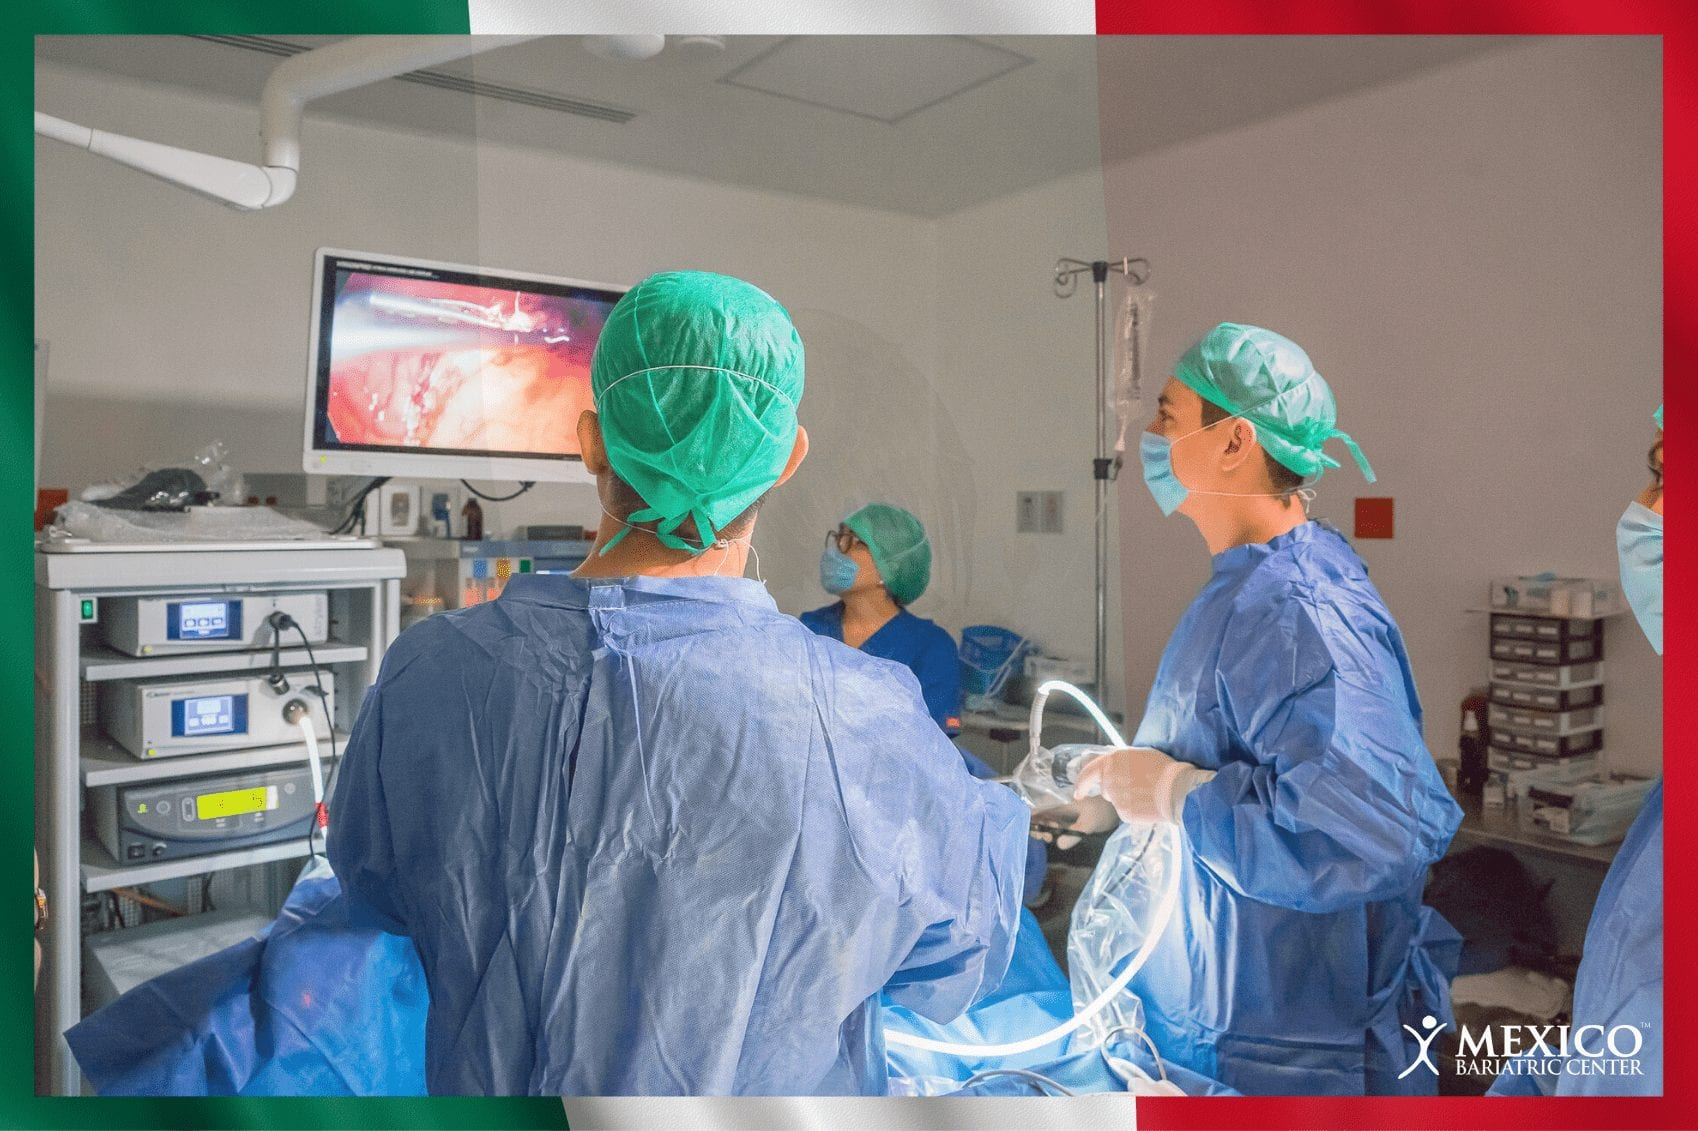 Best Bariatric Surgeons in Mexico Performing Bariatric Surgery